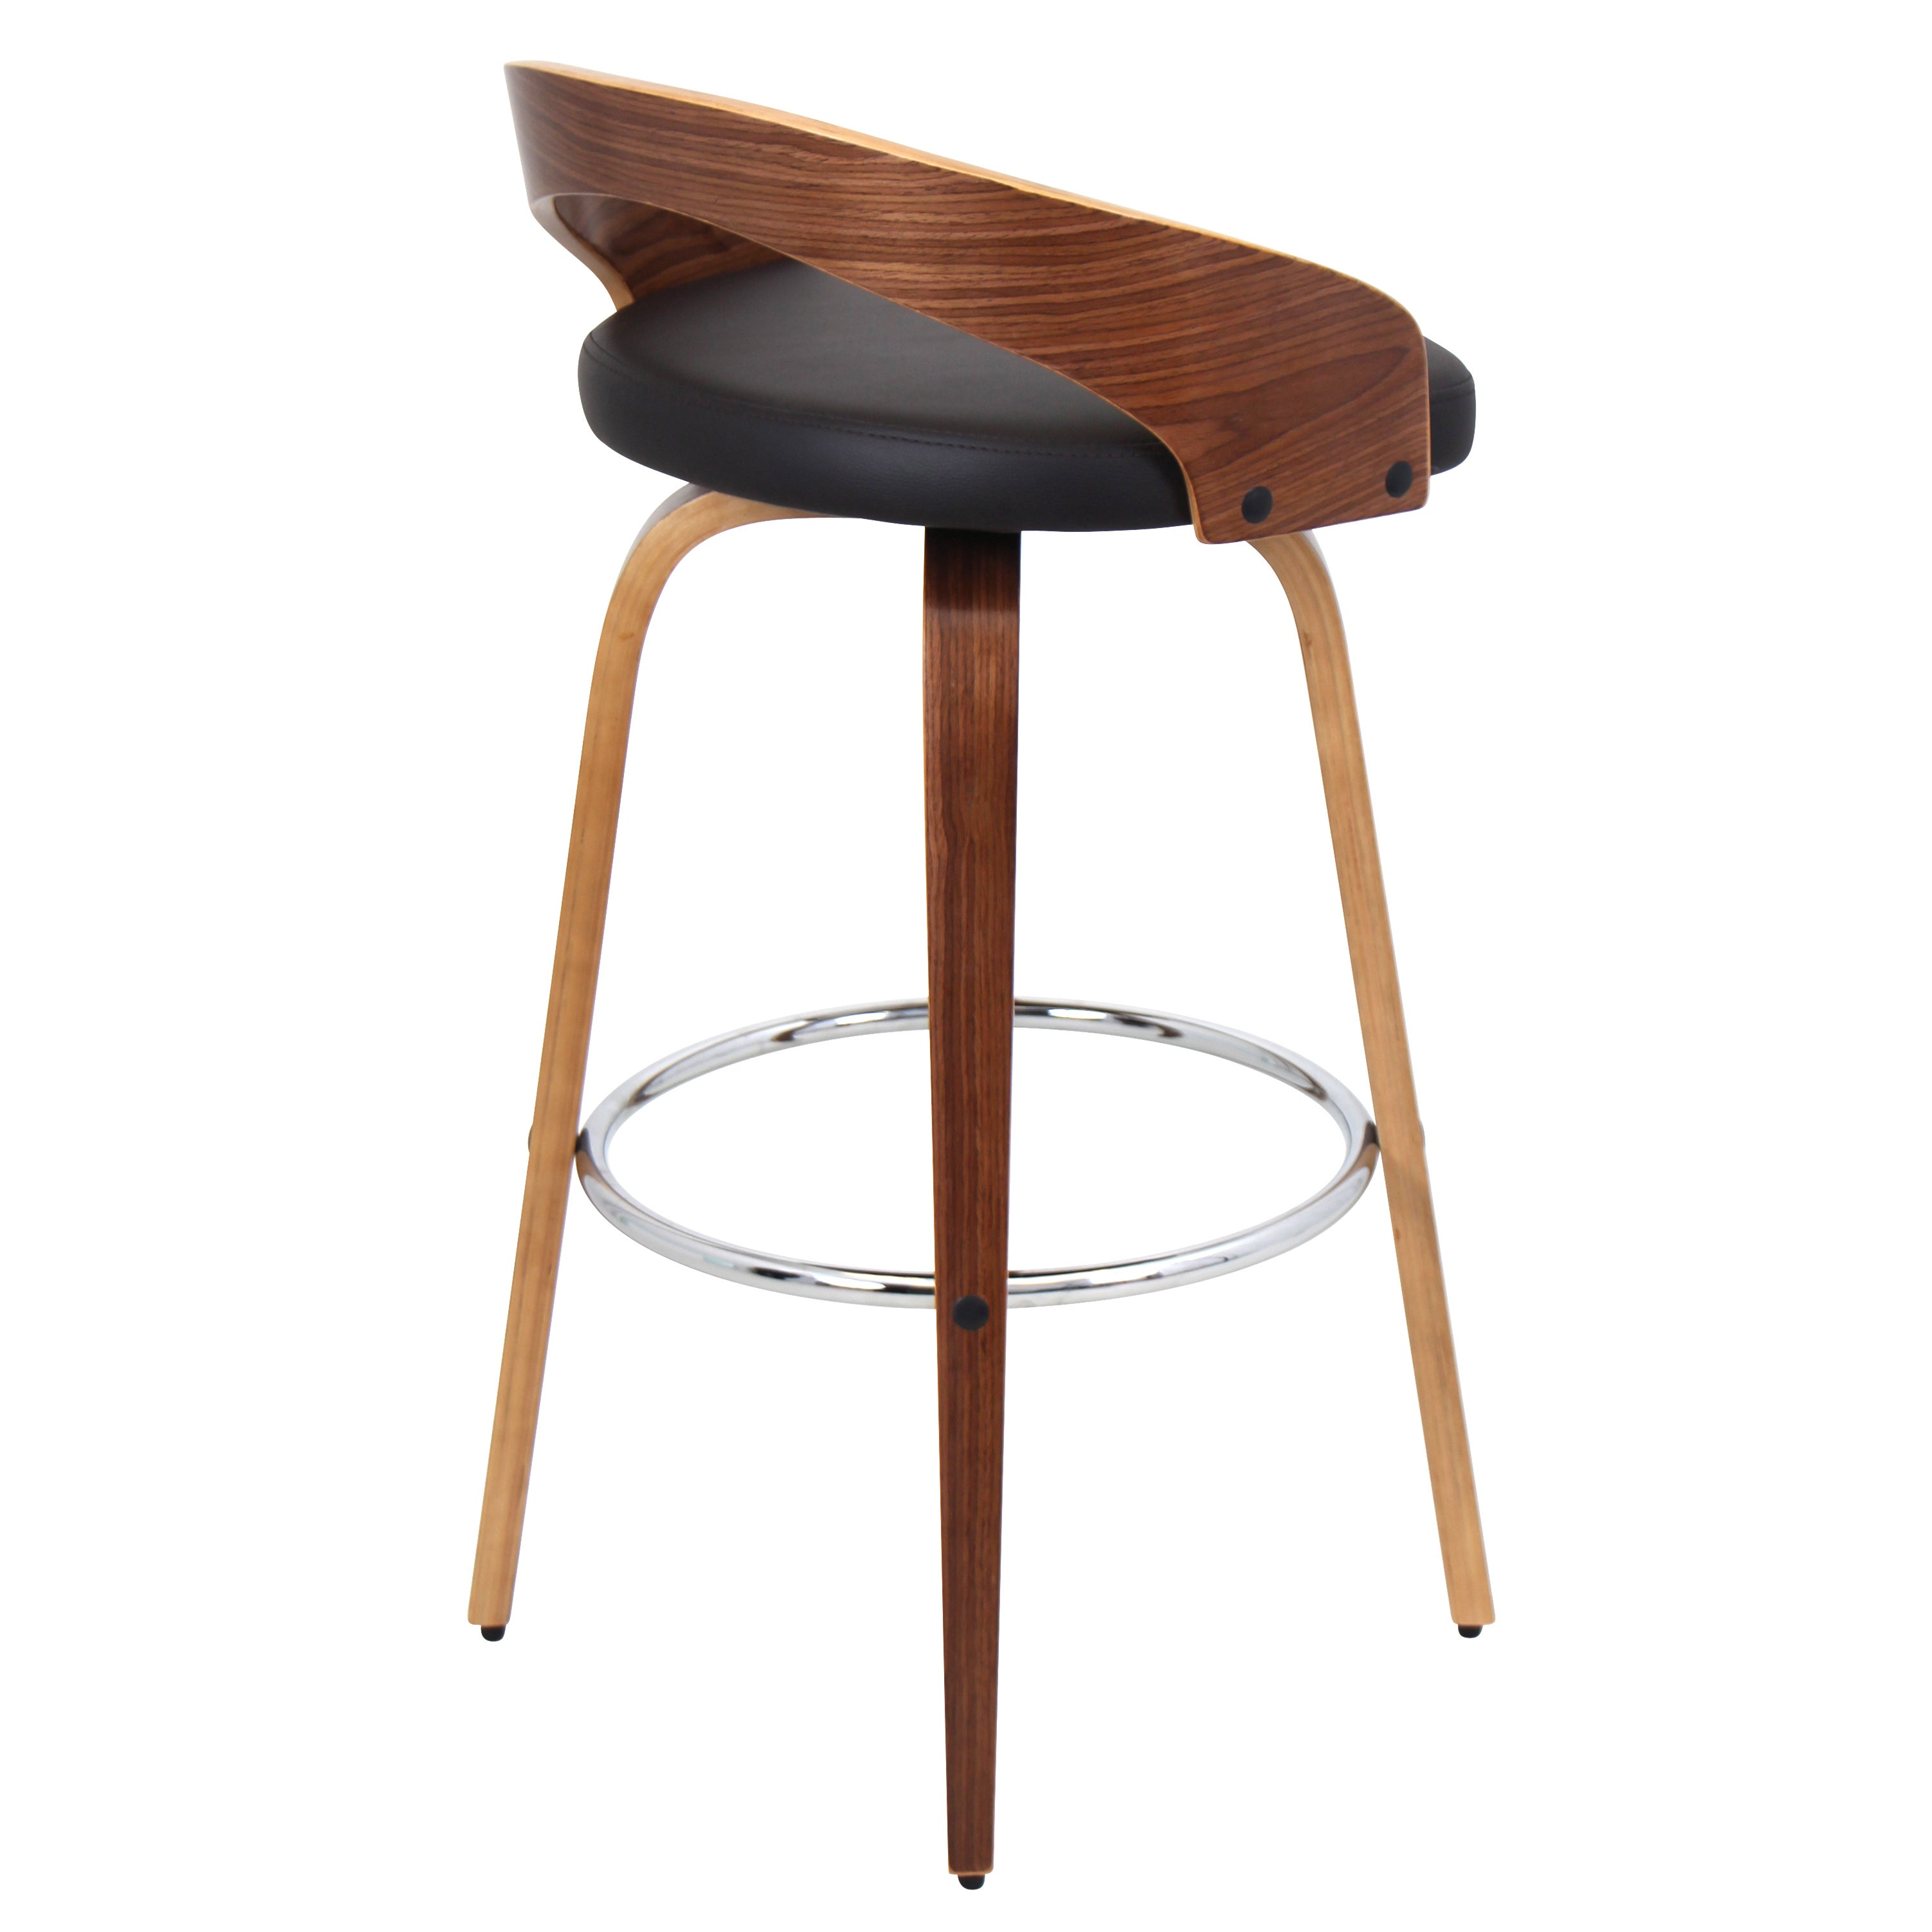 Grotto Mid Century Modern Wood Barstool Free Shipping Today 16554325